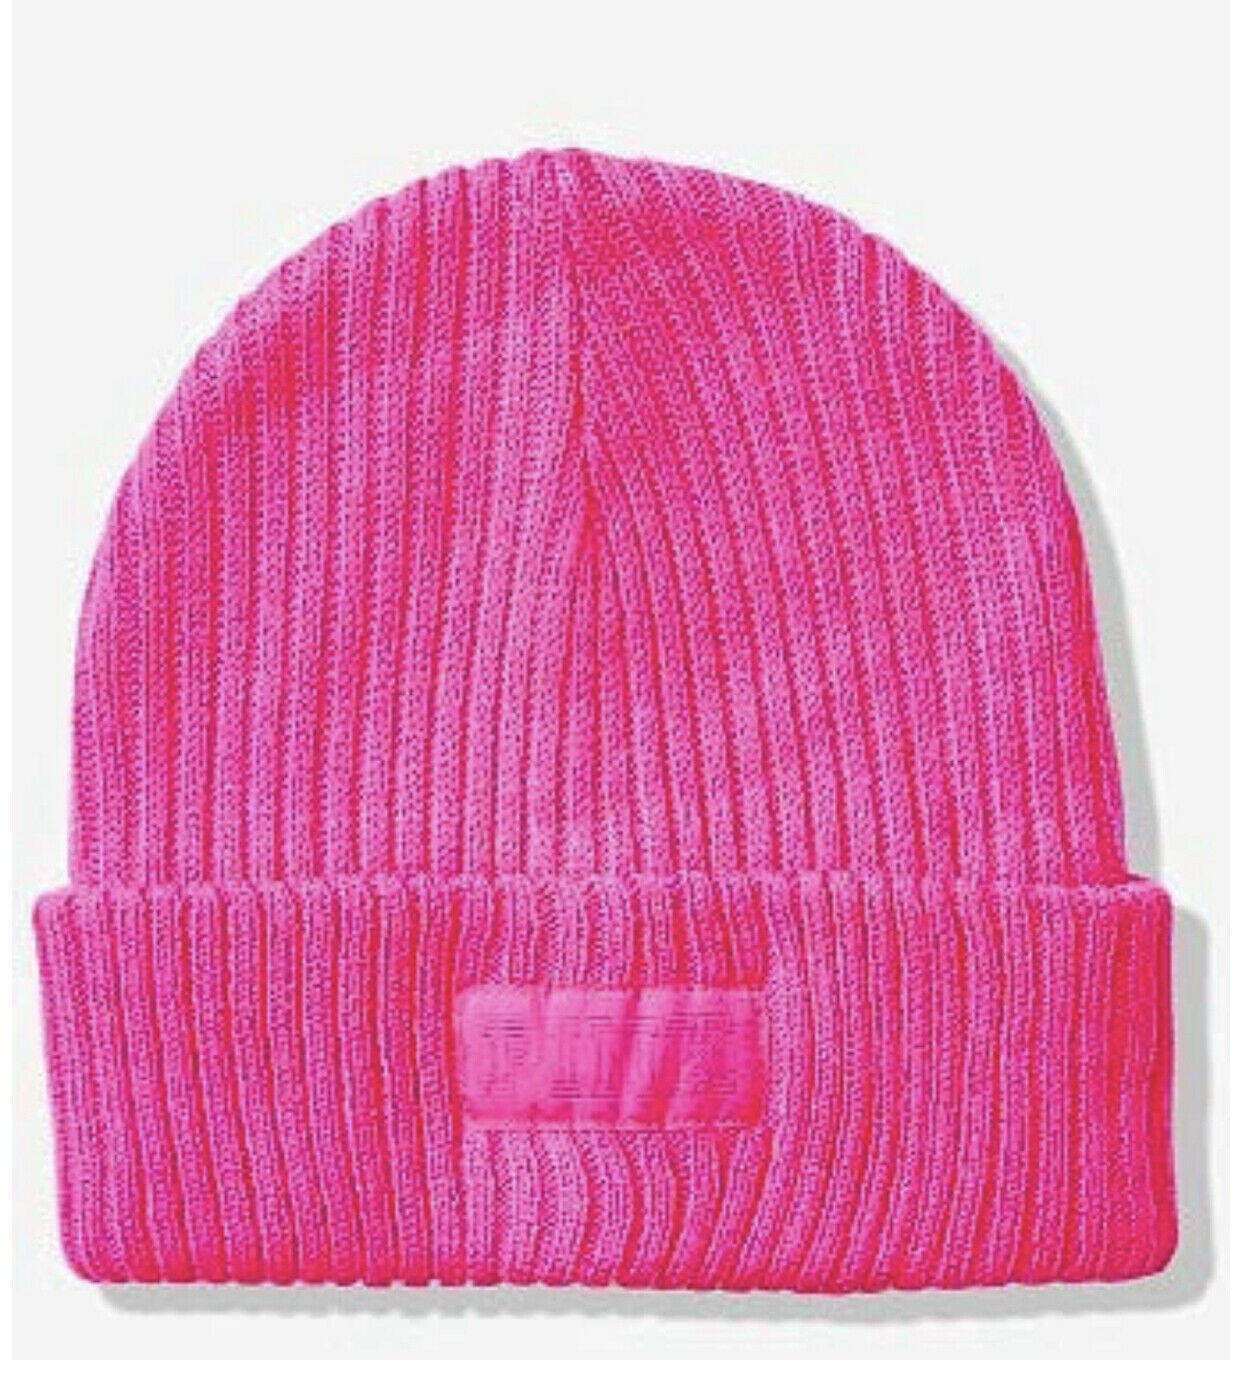 Victoria's Secret Pink Ribbed Beanie Hat Hot Pink Color Cute Warm NEW